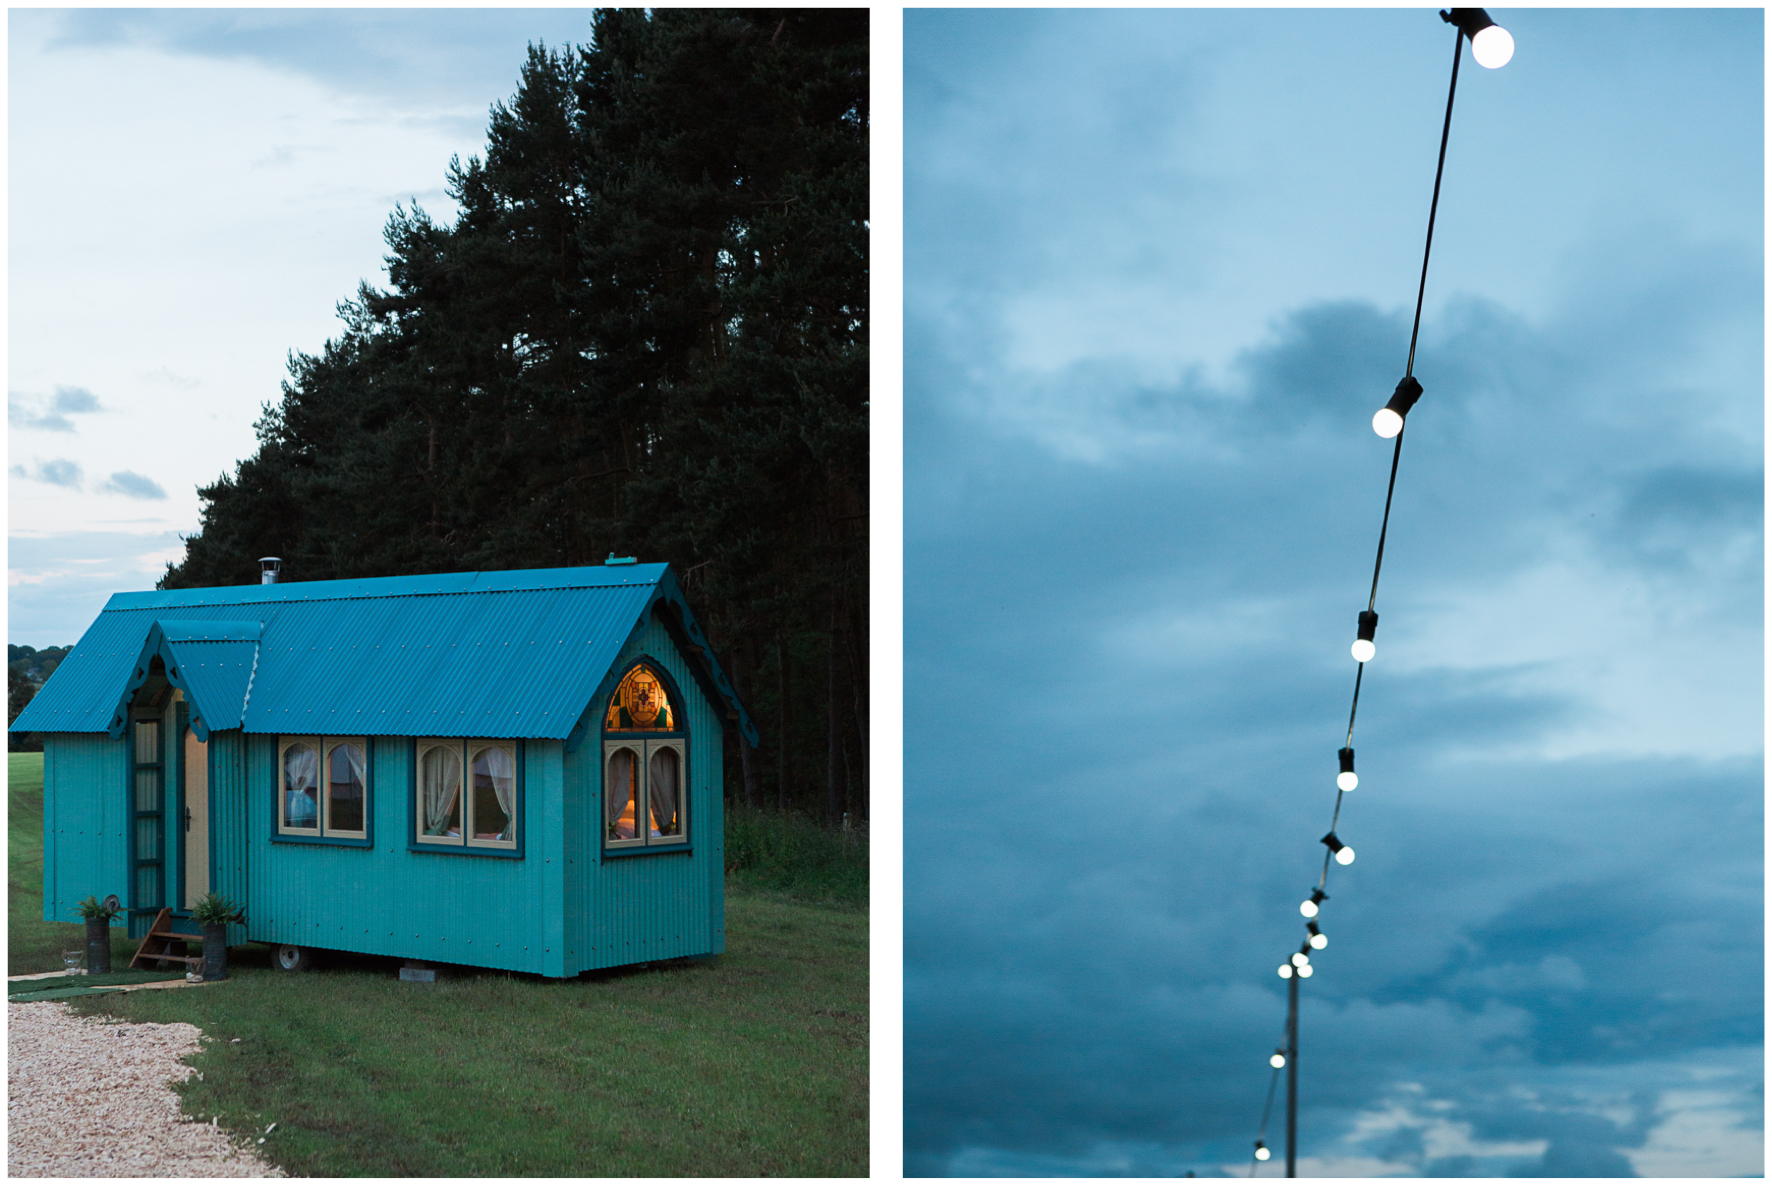 glamping wedding, Lucy Davenport Photography, home wedding, Sperry tent, PapaKata, festoon lighting